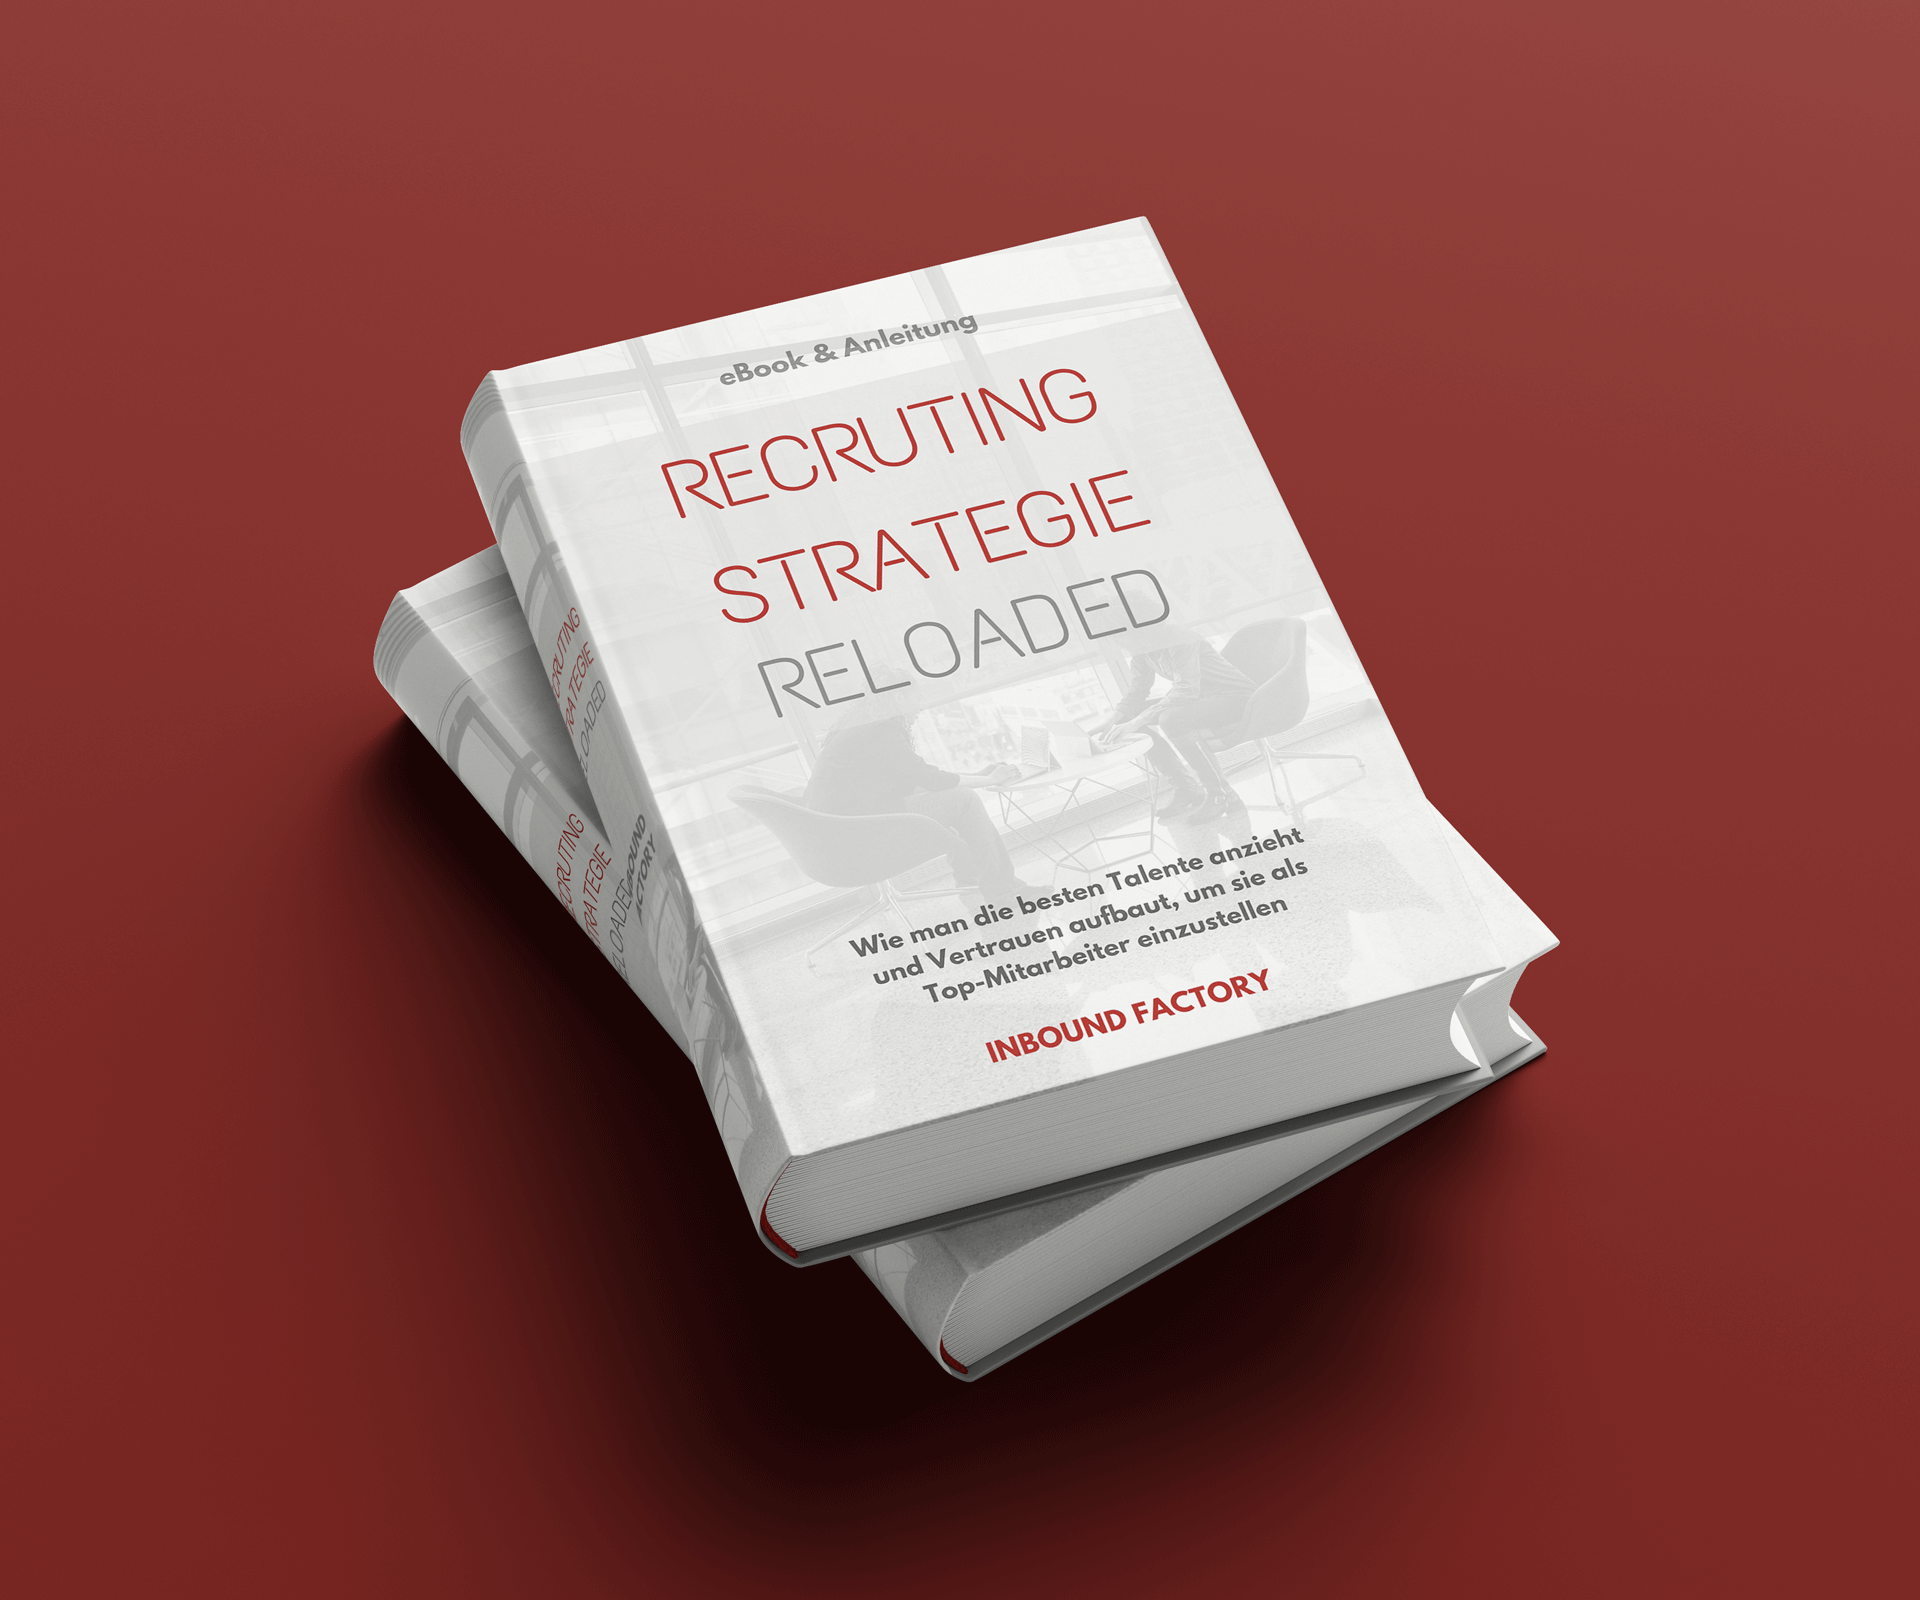 Recruiting-Strategie-ebook